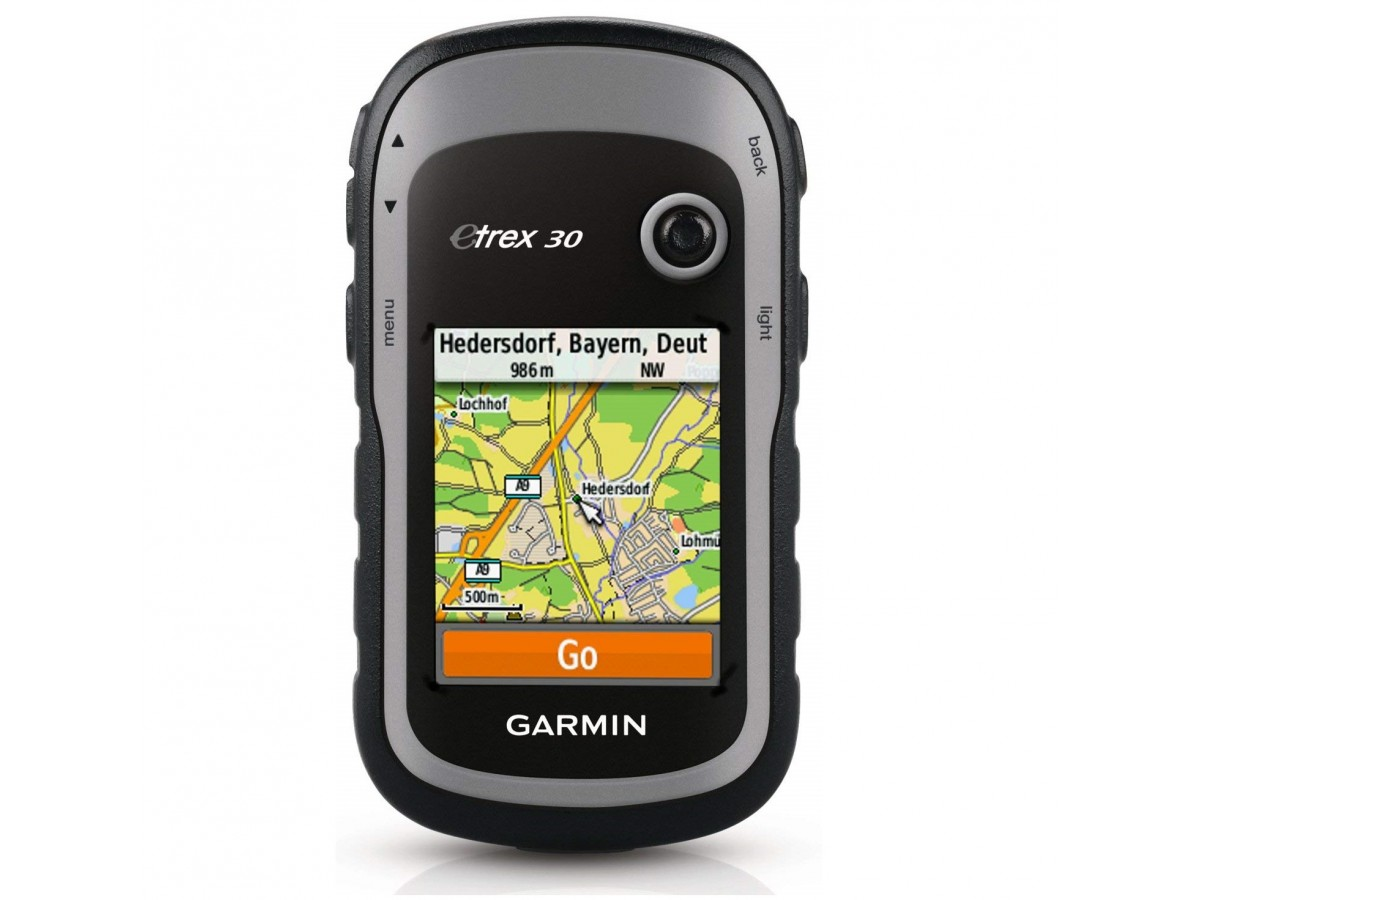 The Garmin eTrex 30 offers a 240x 320 display for easy readability.